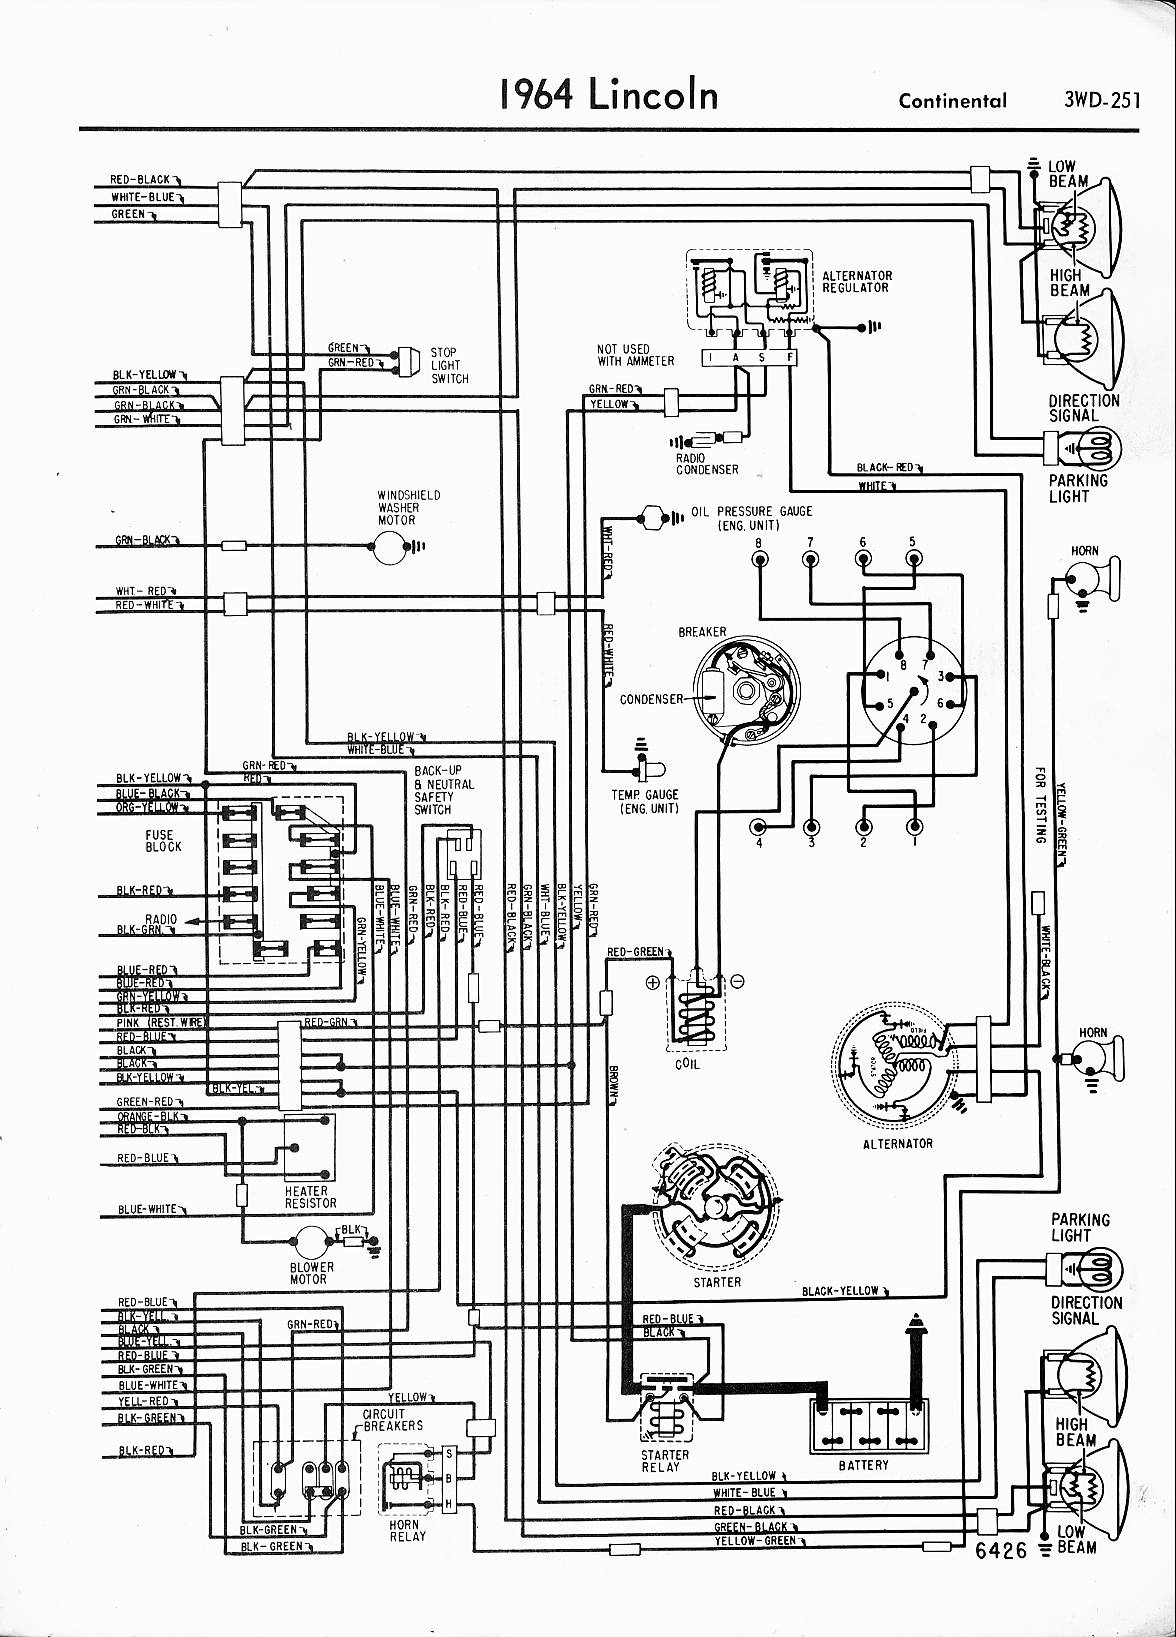 hight resolution of images of 1961 lincoln continental wiring diagram wiring diagramslincoln wiring diagrams 1957 1965 1964 lincoln right